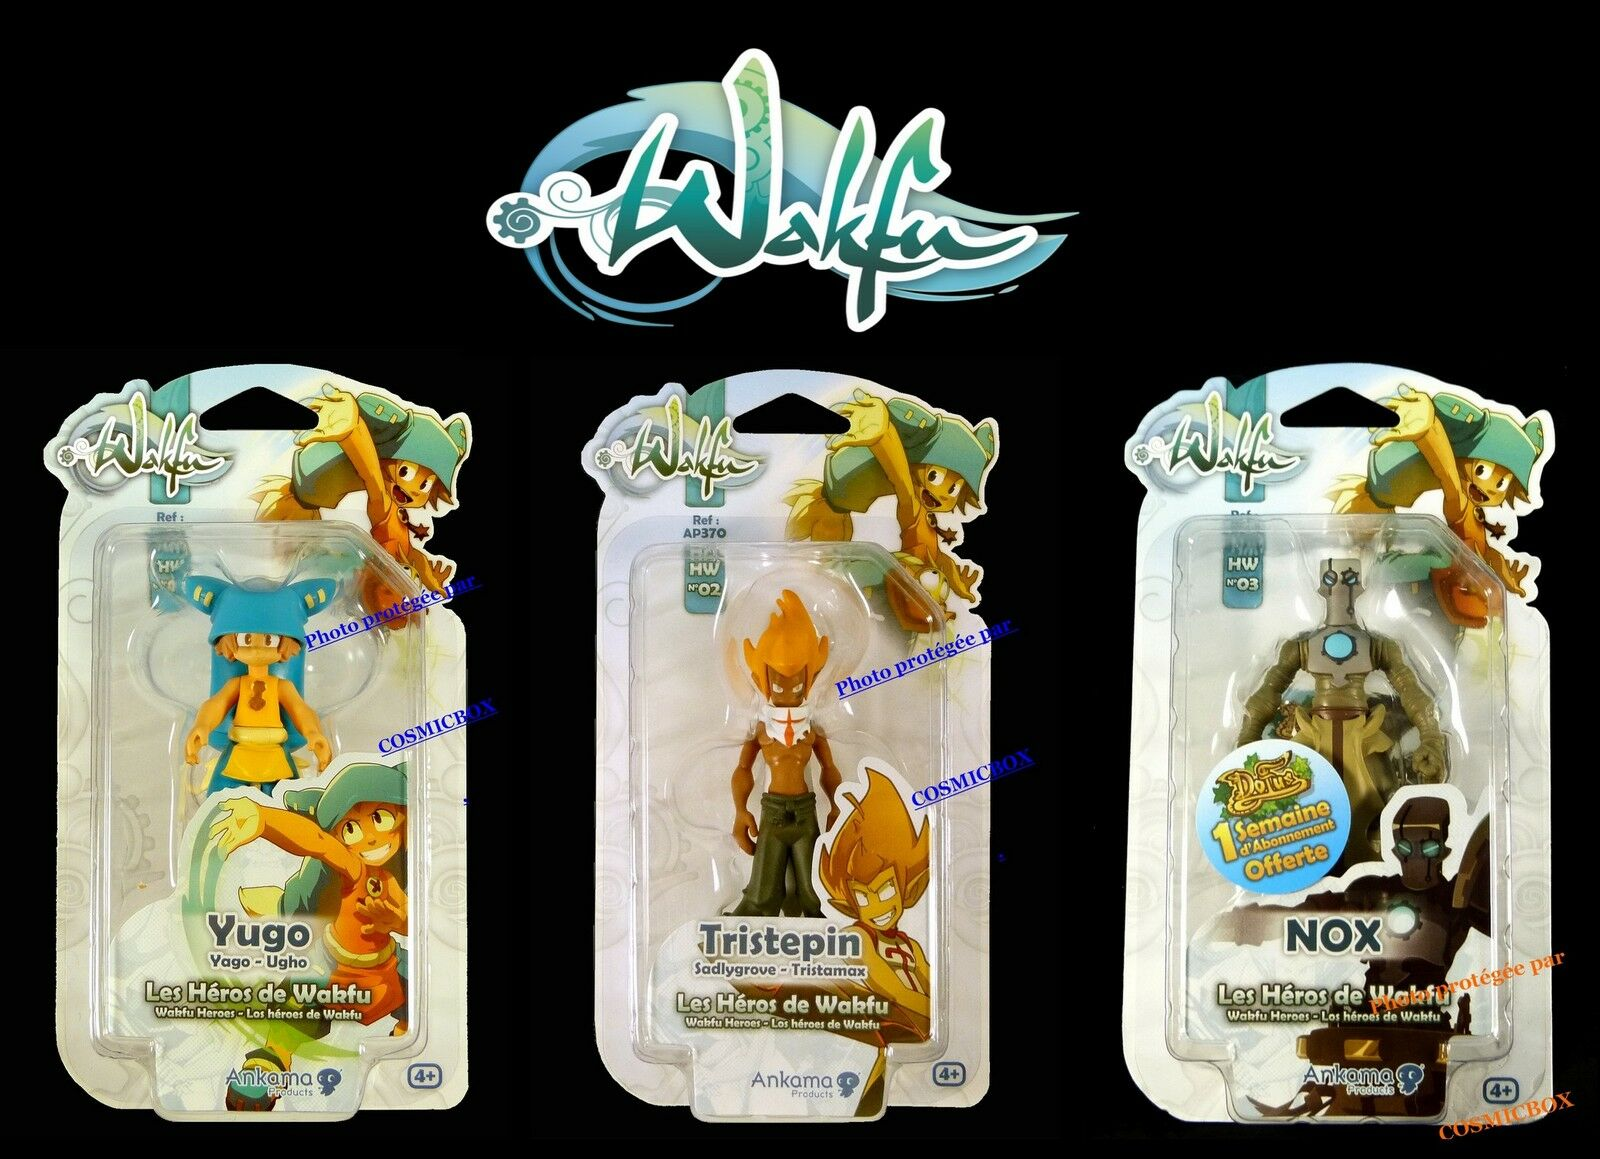 Prize of 3 actions figures WAKFU hw YUGO Yago SADLYGROVE NOX DOFUS by Ankama new